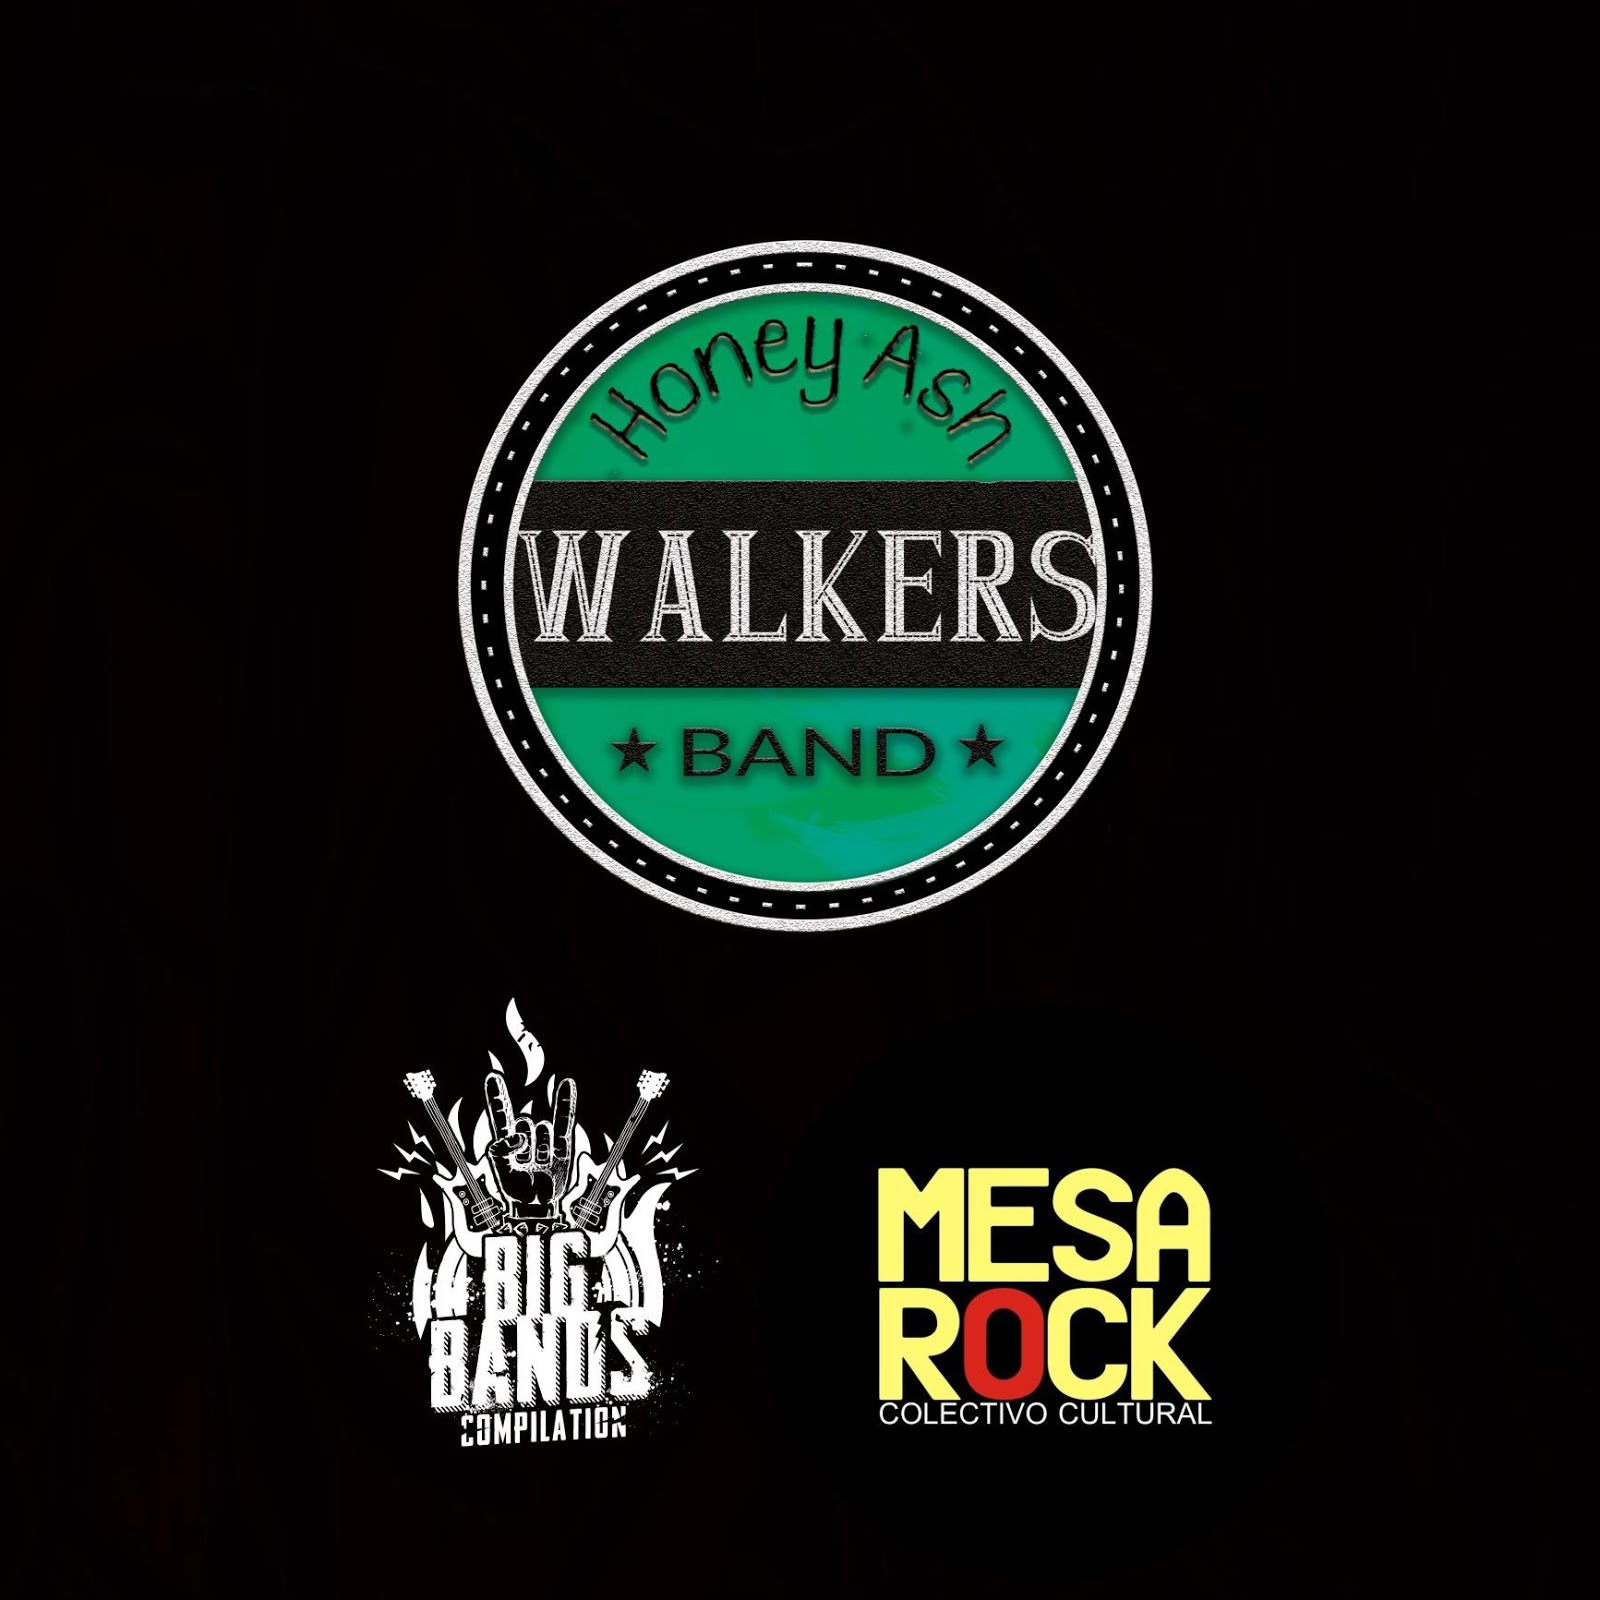 HONEY ASH WALKERS - BIG BANDS COMPILATION 2020